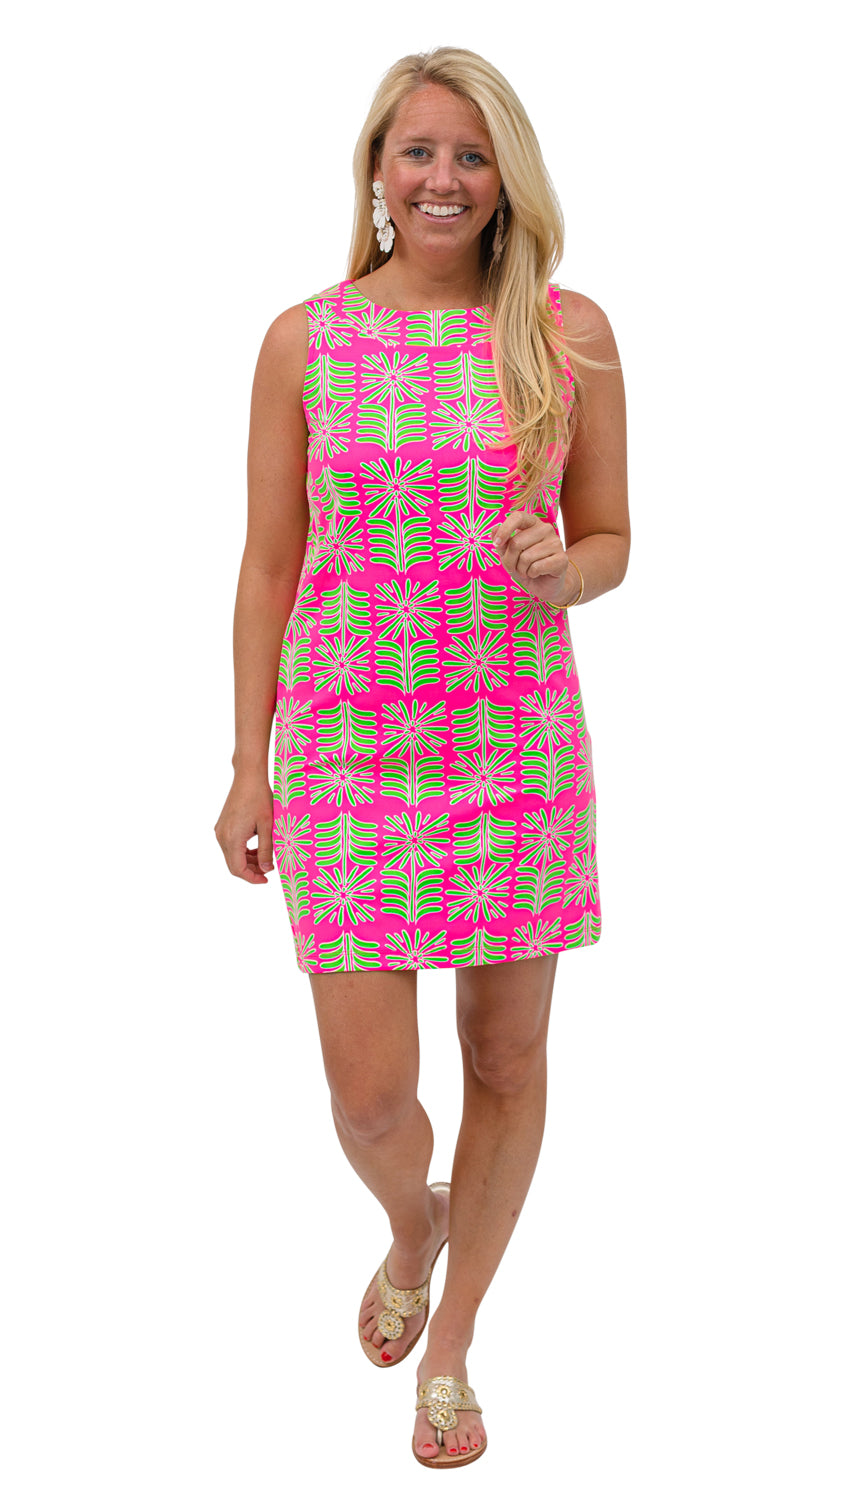 Yacht Club Shift - Pink/Green Montauk Daisy